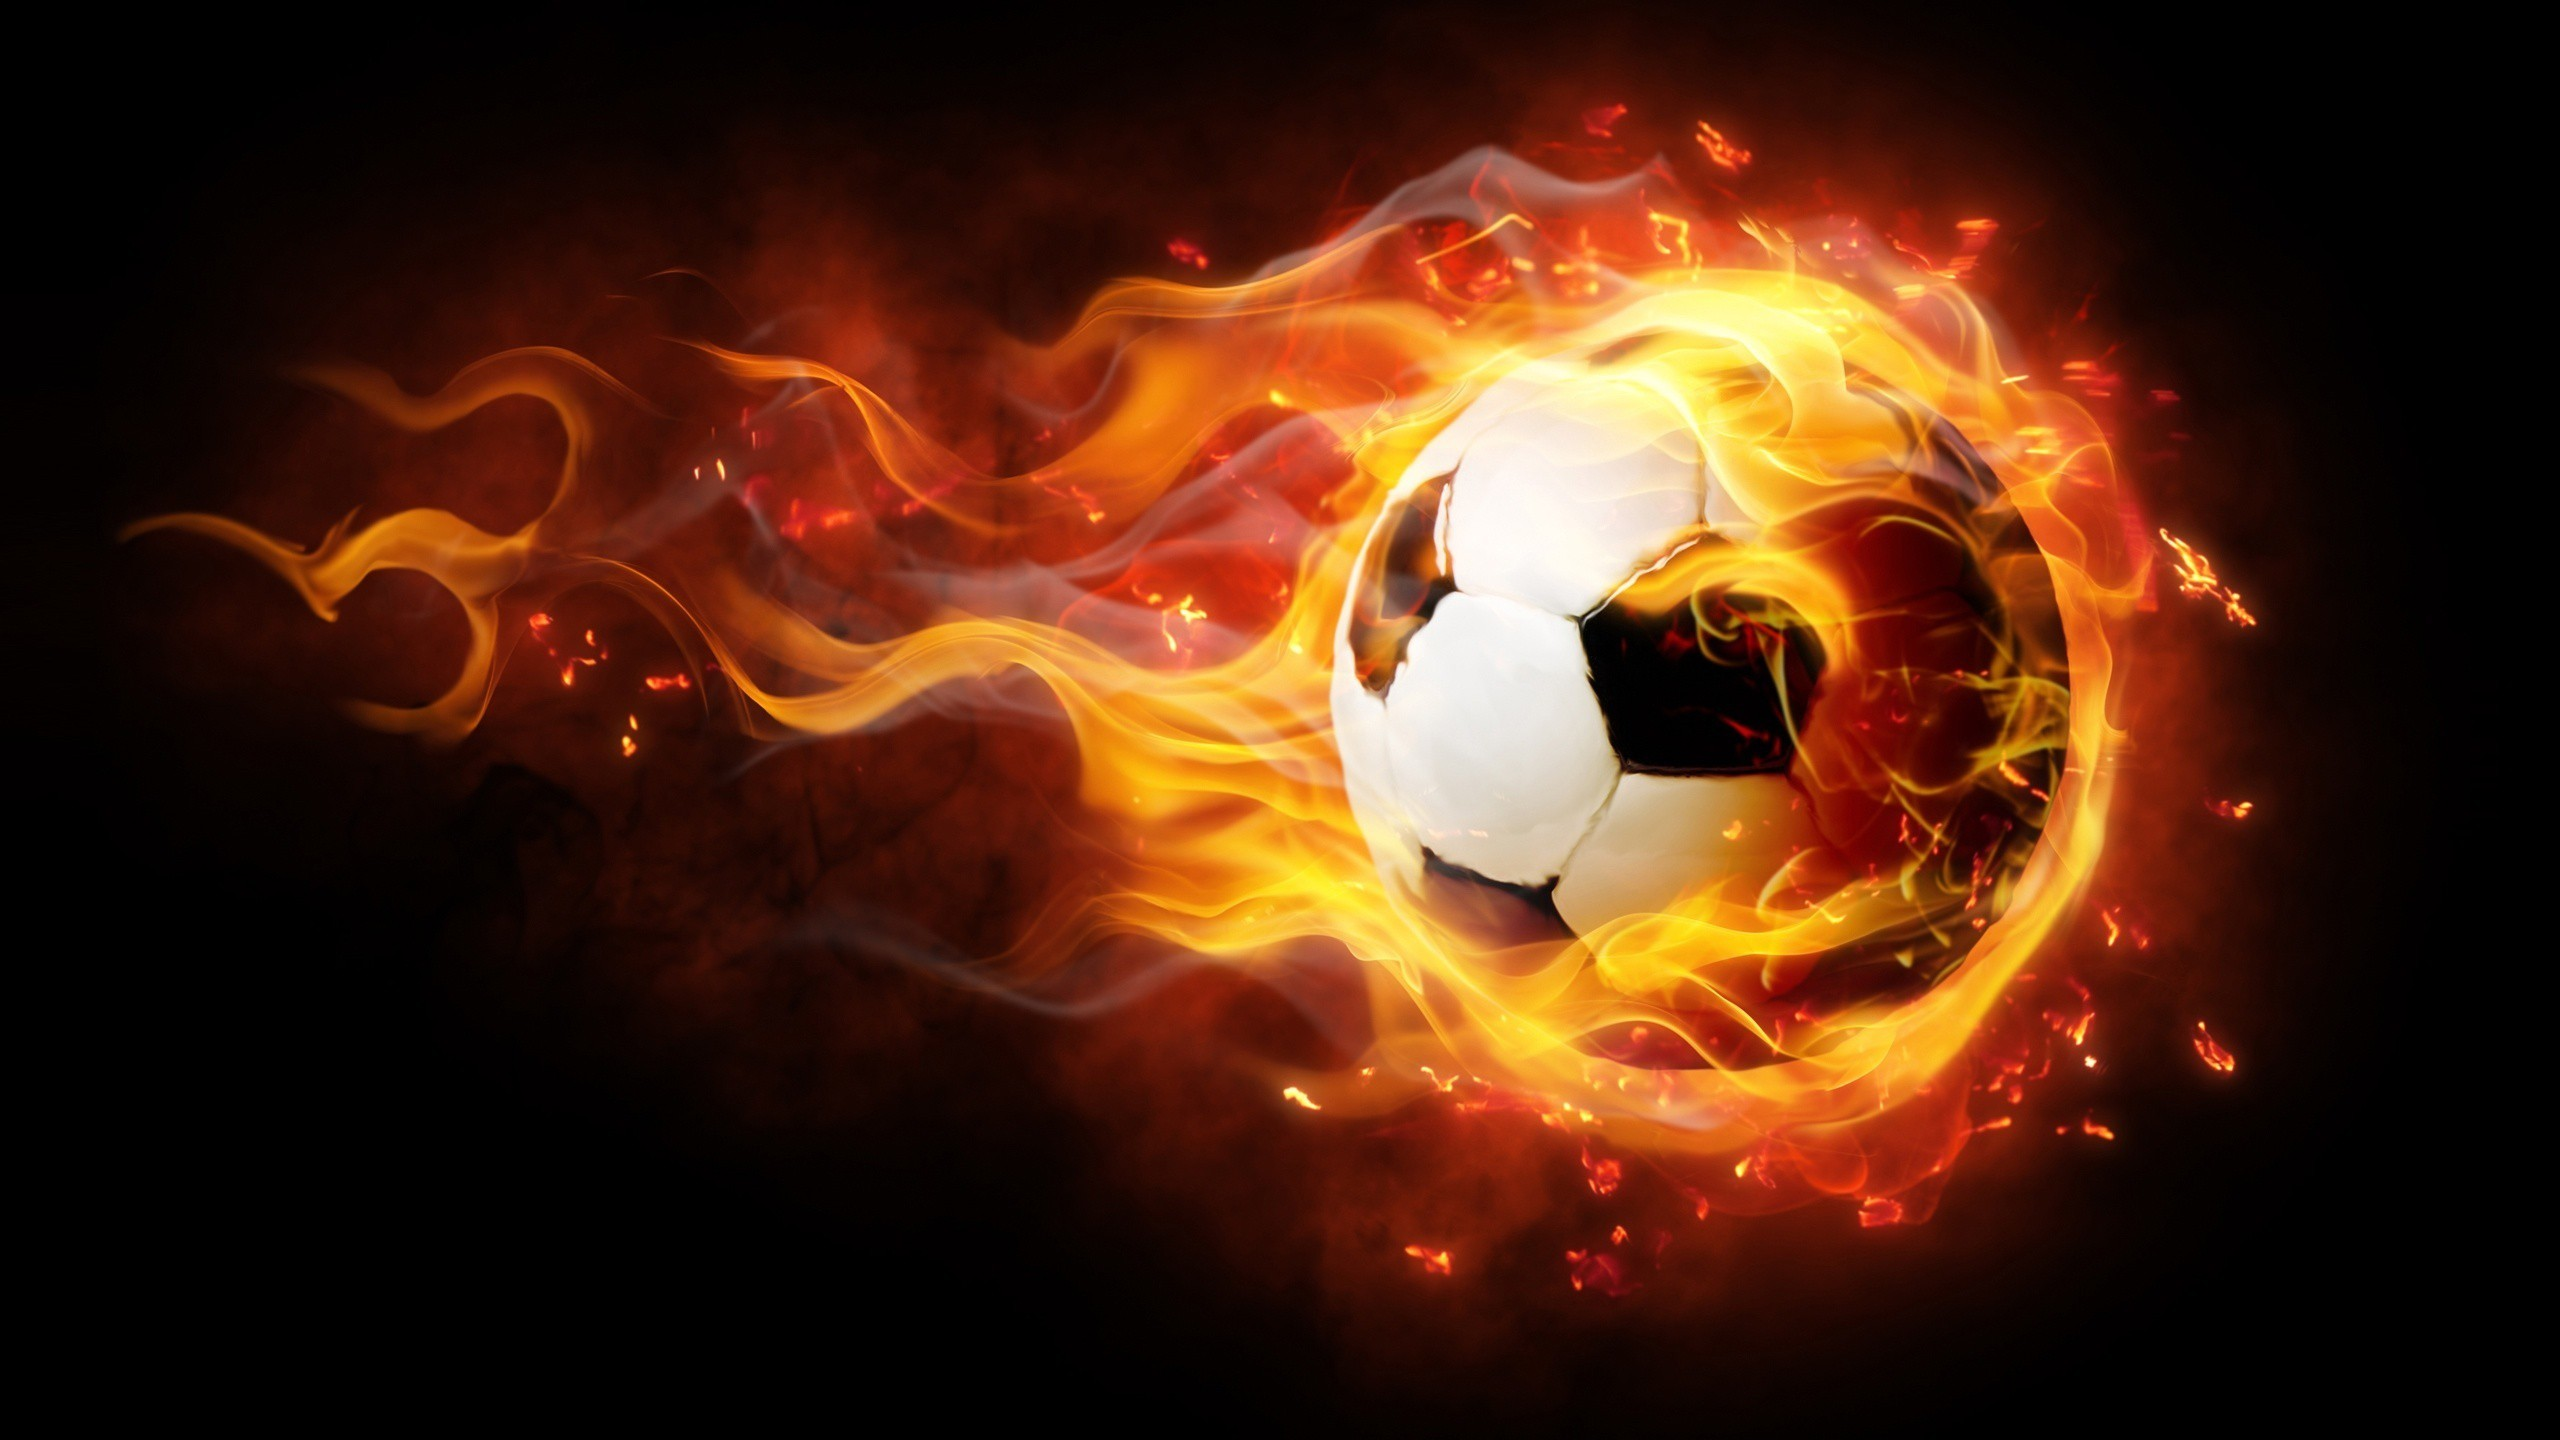 2560x1440 Soccer Fire Ball Desktop Background wallpaper